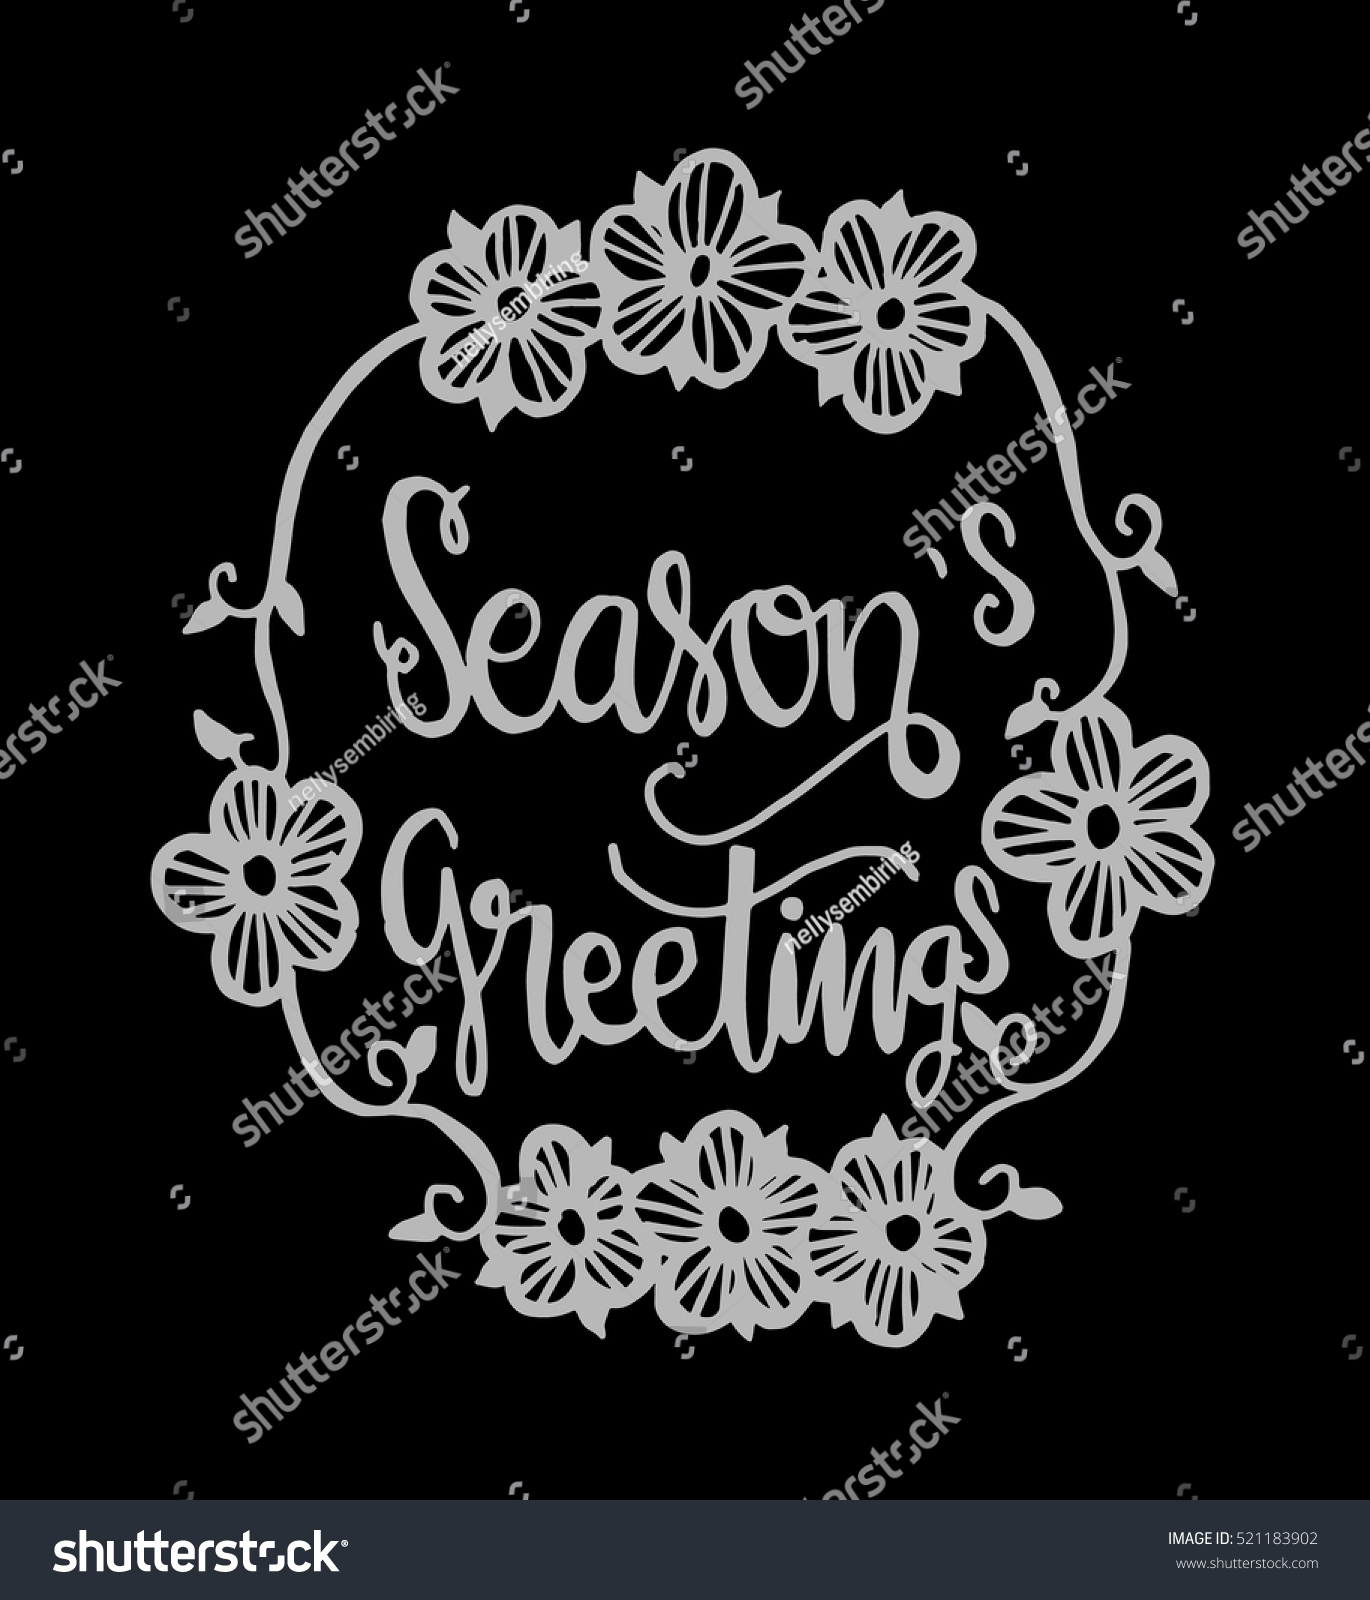 Seasons greetings hand lettered quote bible verse modern seasons greetings hand lettered quote bible verse modern calligraphy ez canvas m4hsunfo